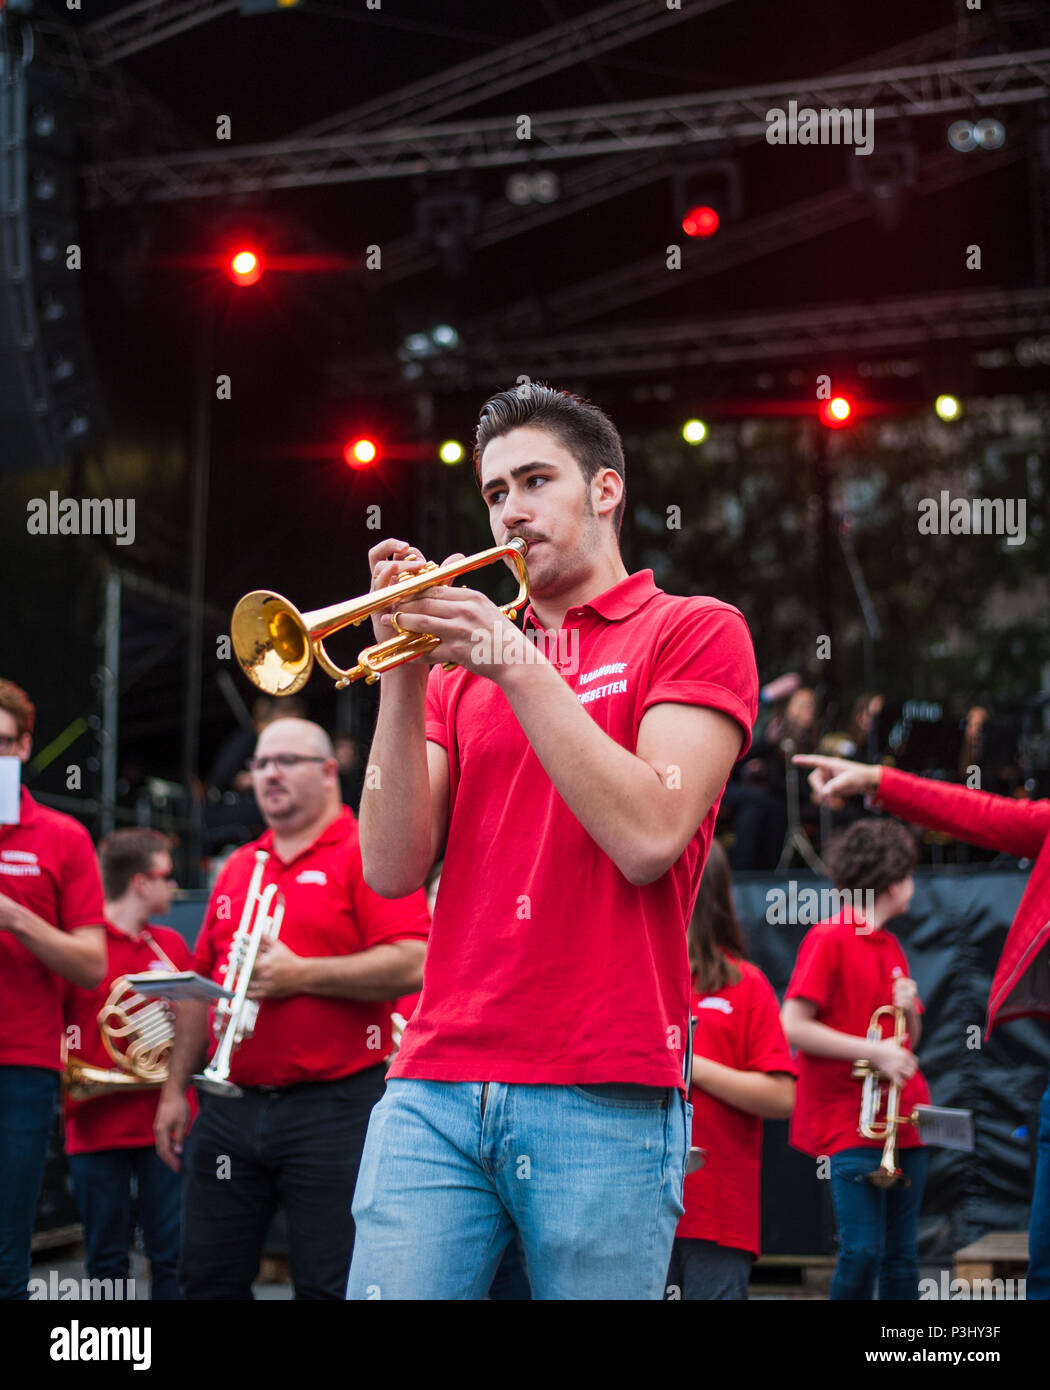 Young musician performing trumpet performance at music festival (Fete de la musique), Luxembourg - Stock Image